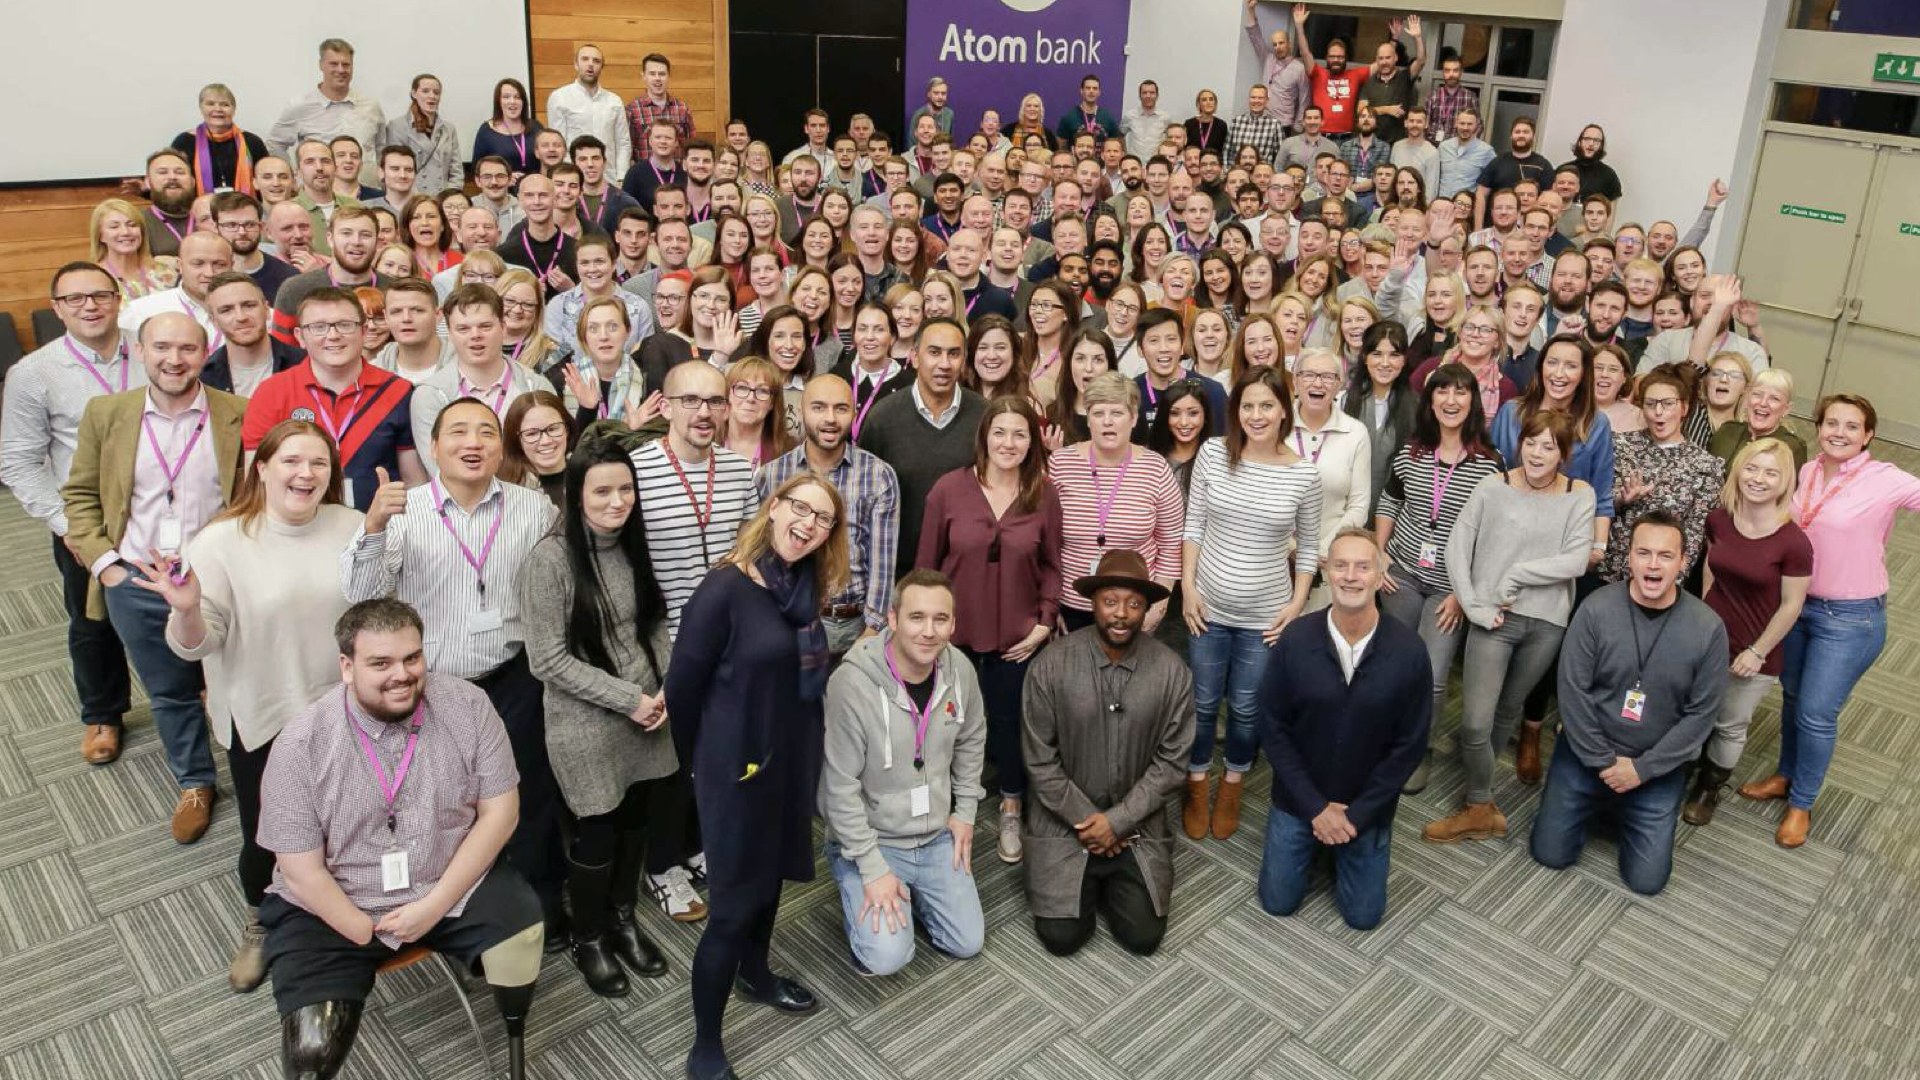 Atom Bank group photo